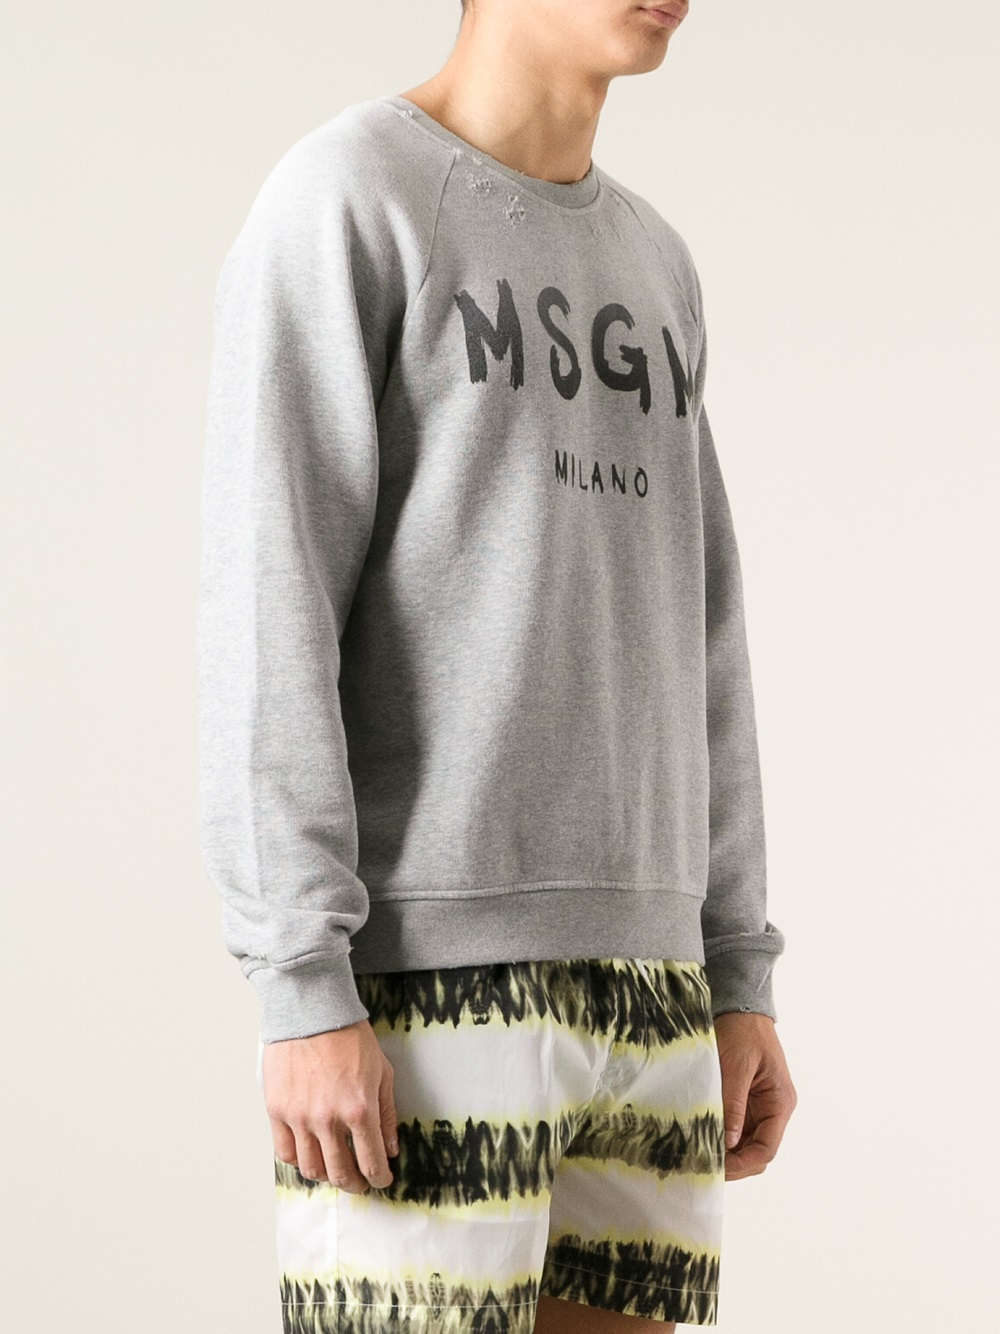 Lyst Msgm Logo Print Sweatshirt In Gray For Men